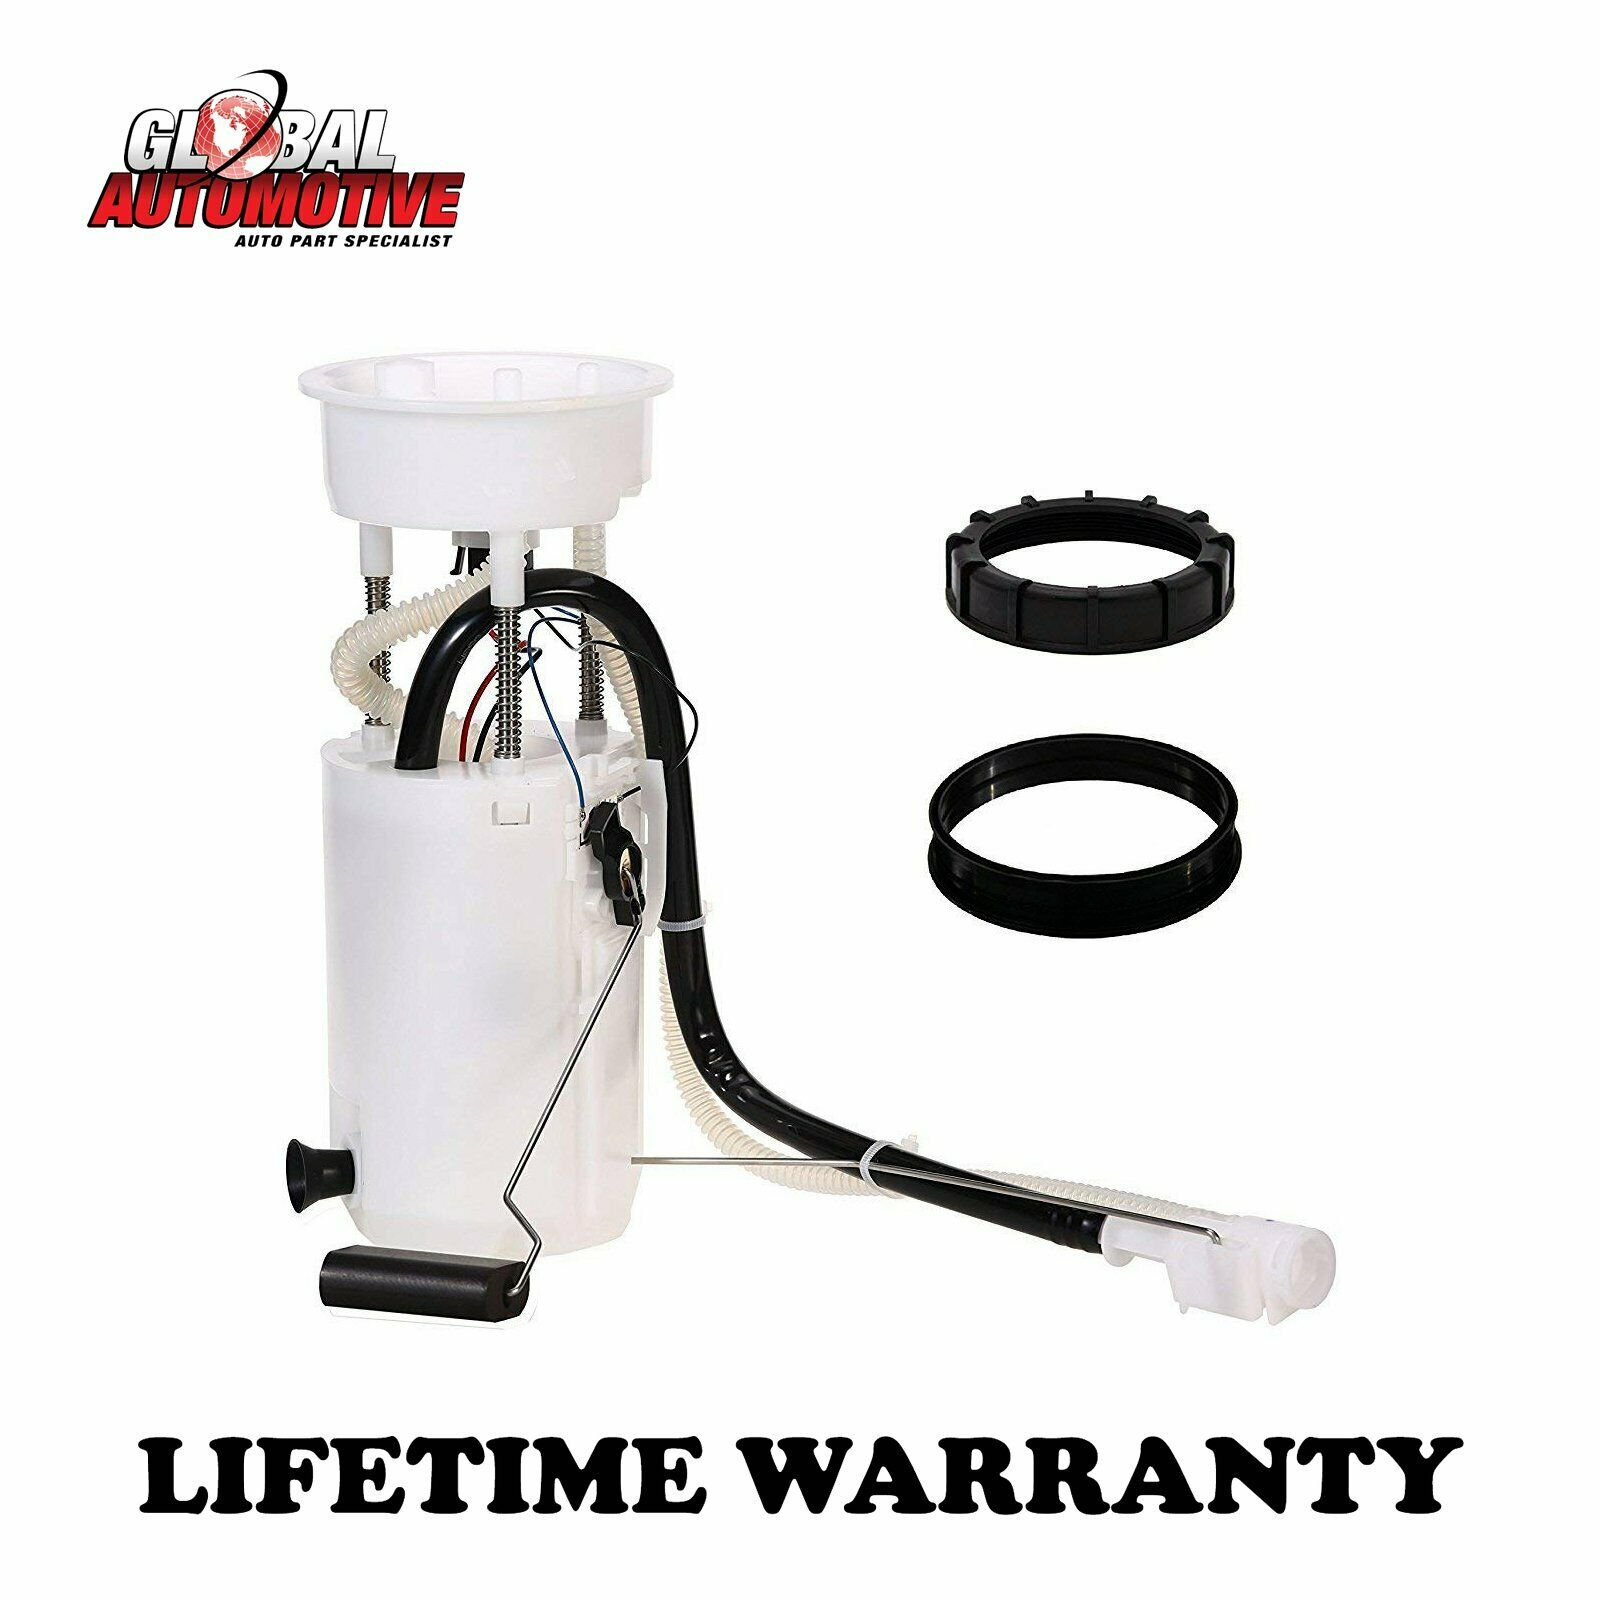 New Fuel Pump Assembly For 98 05 Mercedes Ml320 Ml350 Ml430 Ml500 2002 Filter 1 Of 1only 4 Available